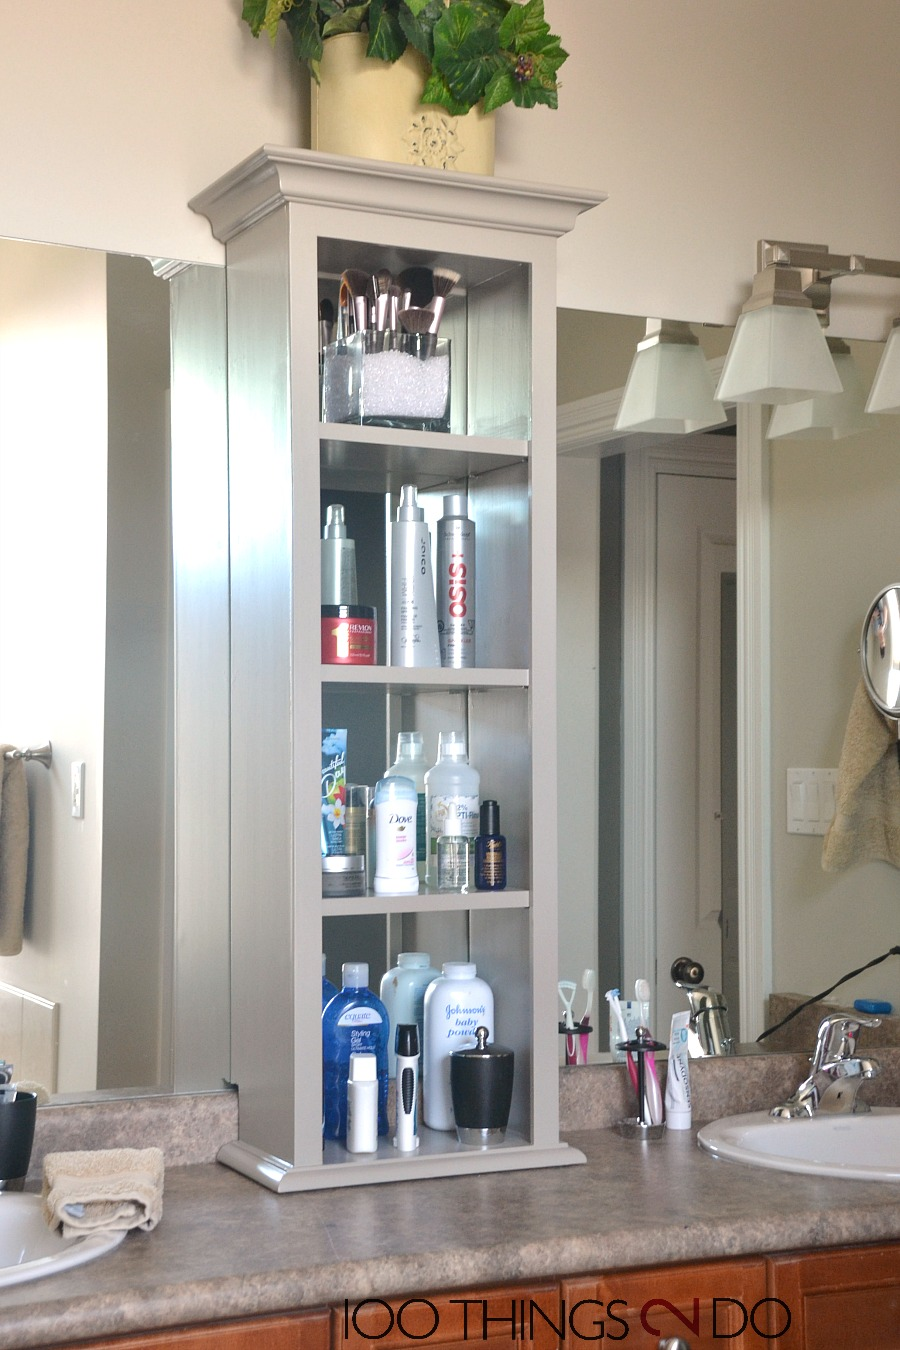 How To Make A Bathroom Vanity Cabinet Bathroom Vanity Storage Bathroom Storage Tower